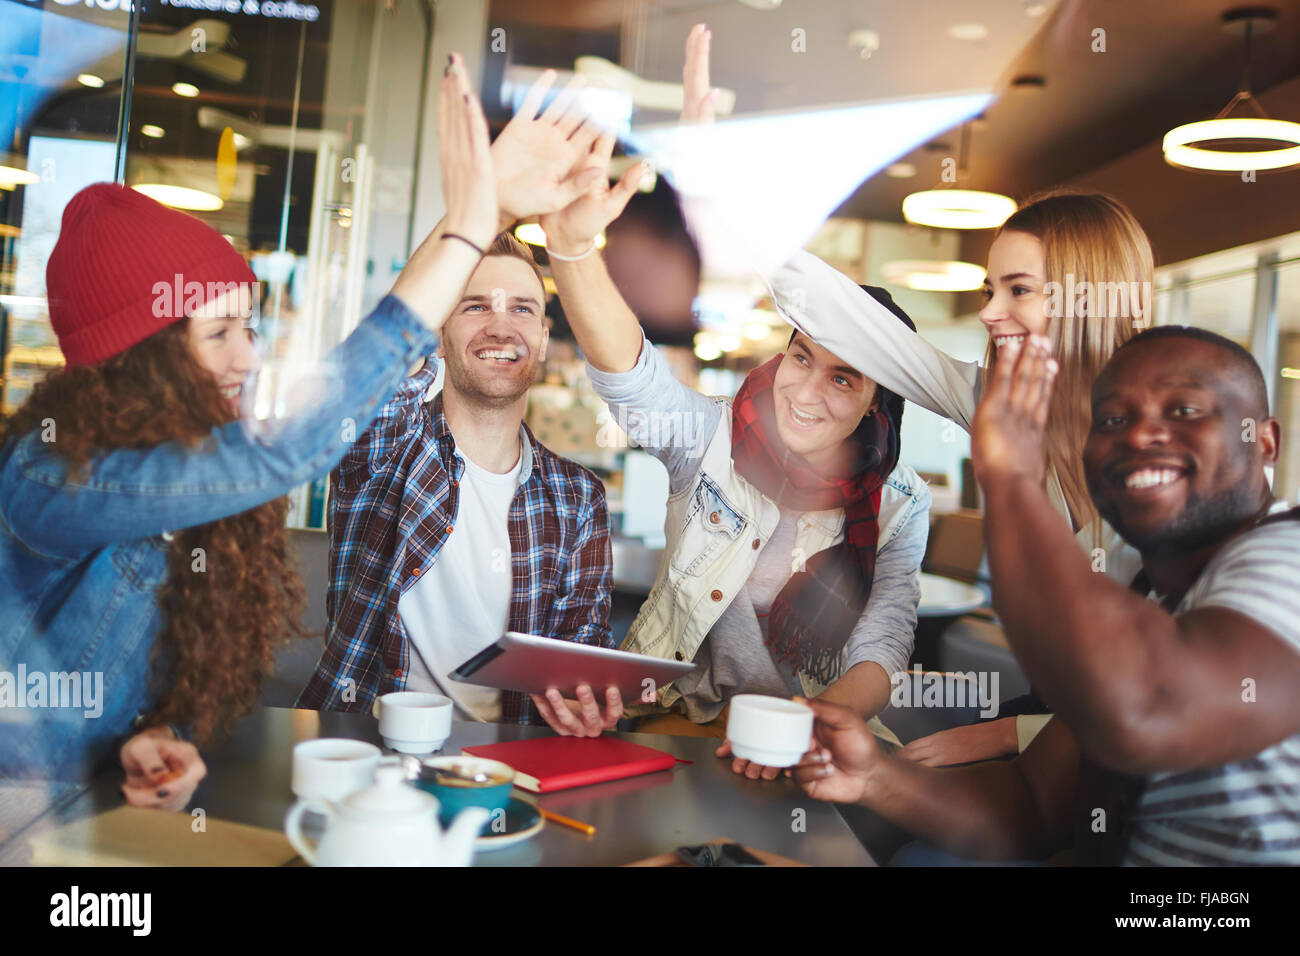 Group of young friends enjoying spending time together Stock Photo